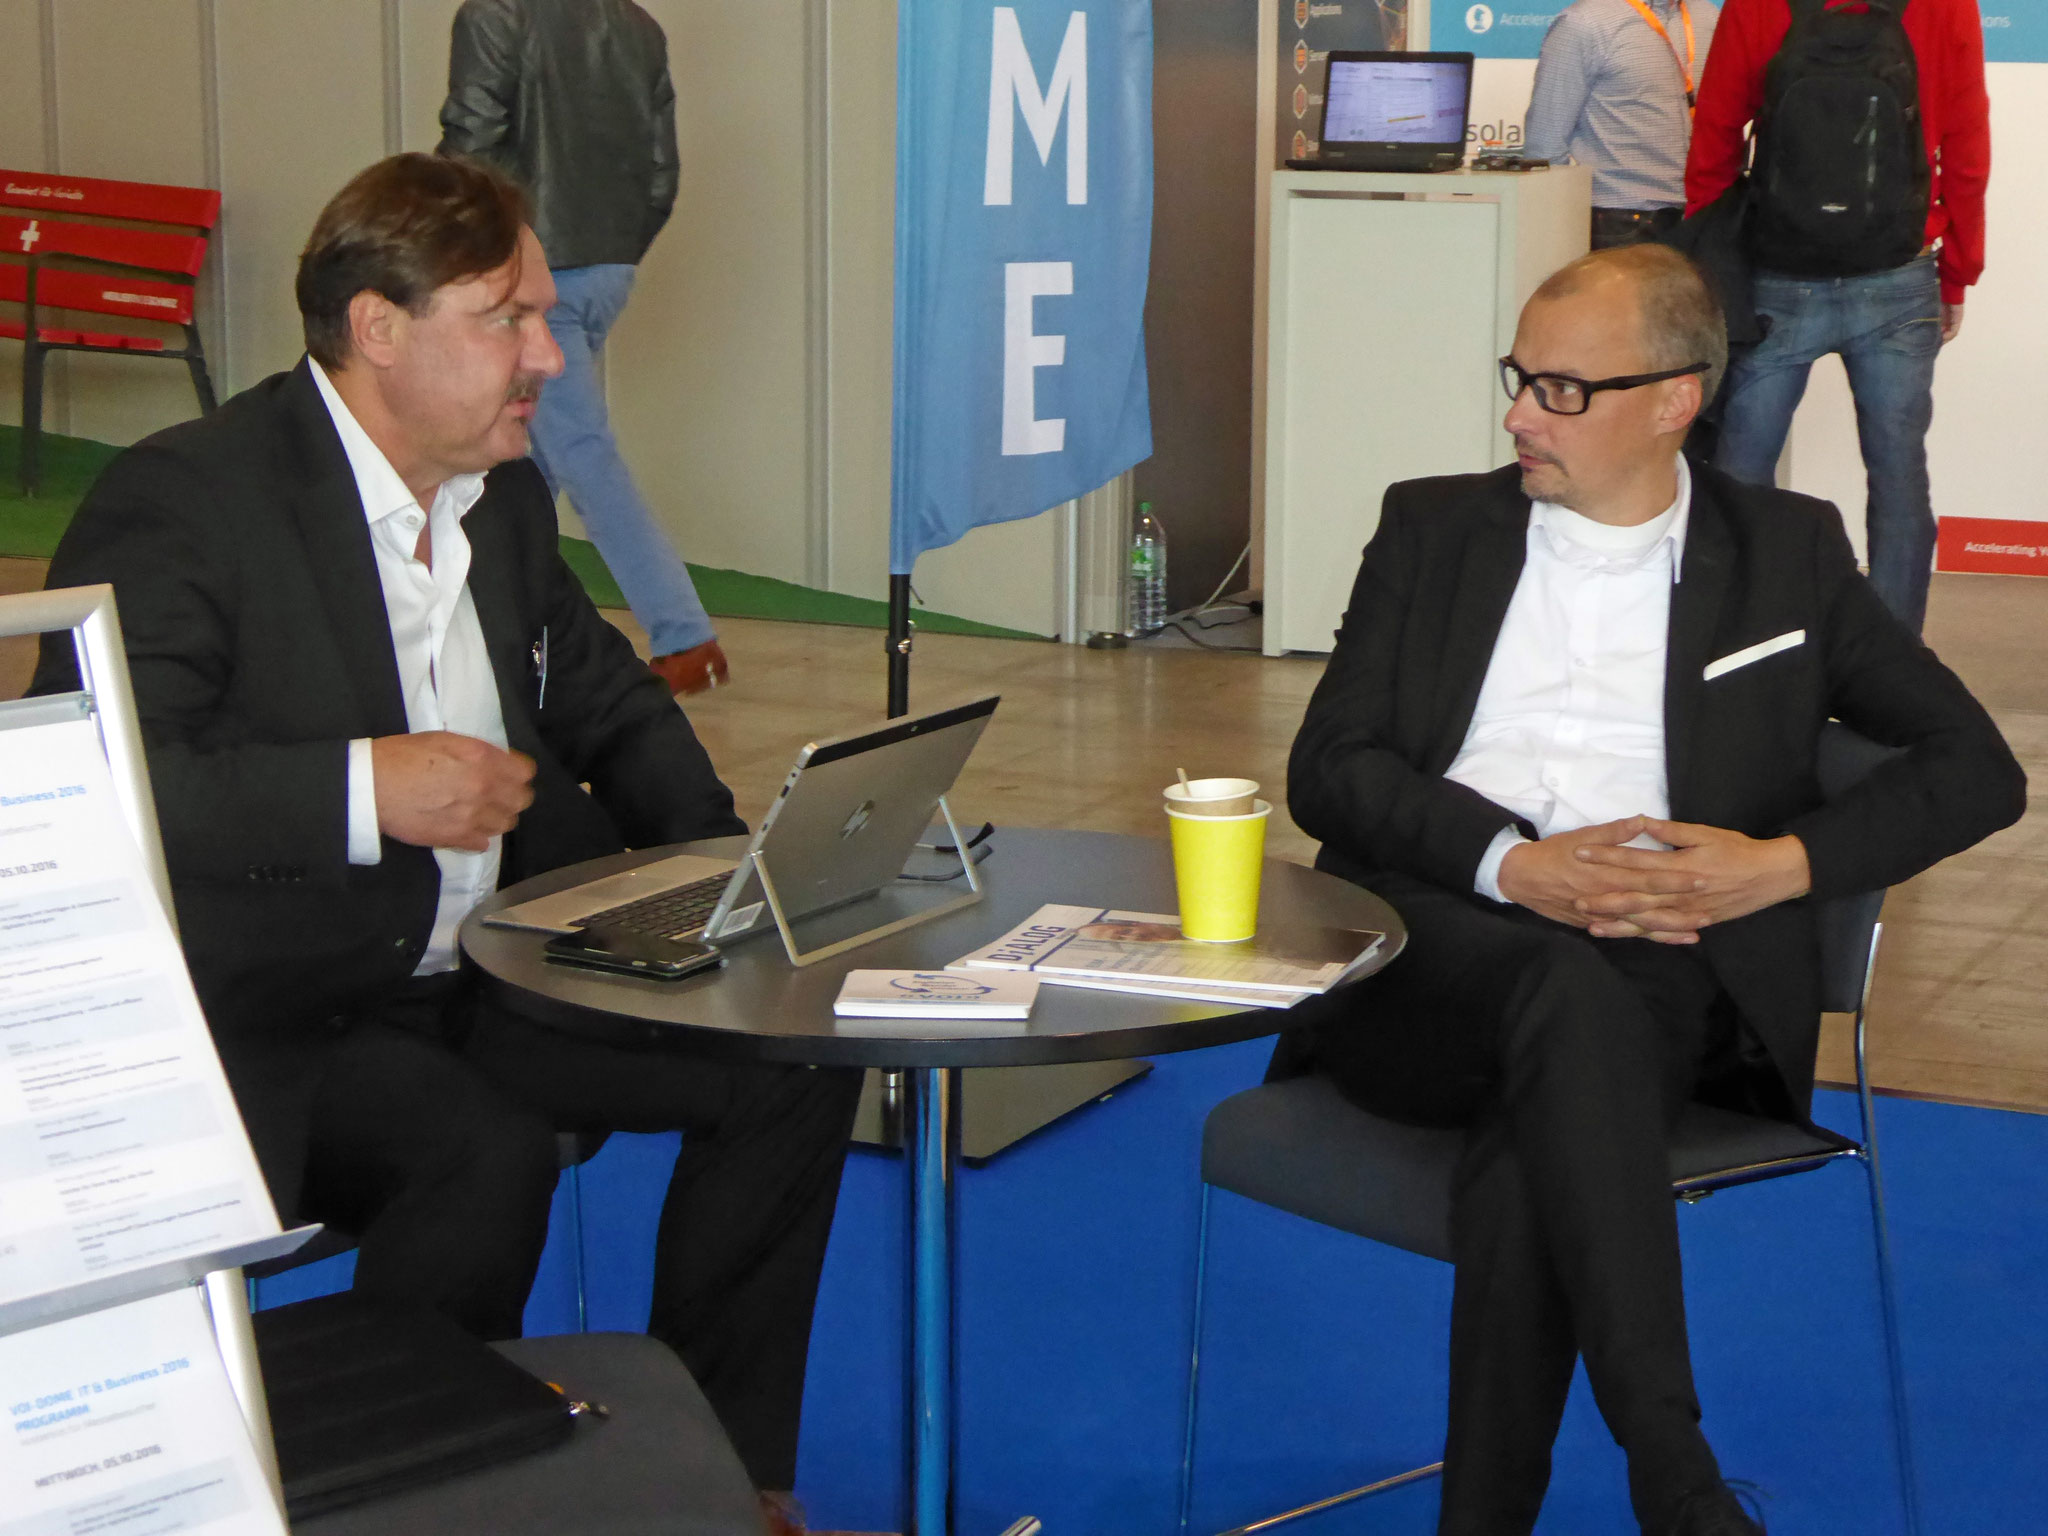 MAJOR LEAGUE auf der IT & Business 2016 in Stuttgart